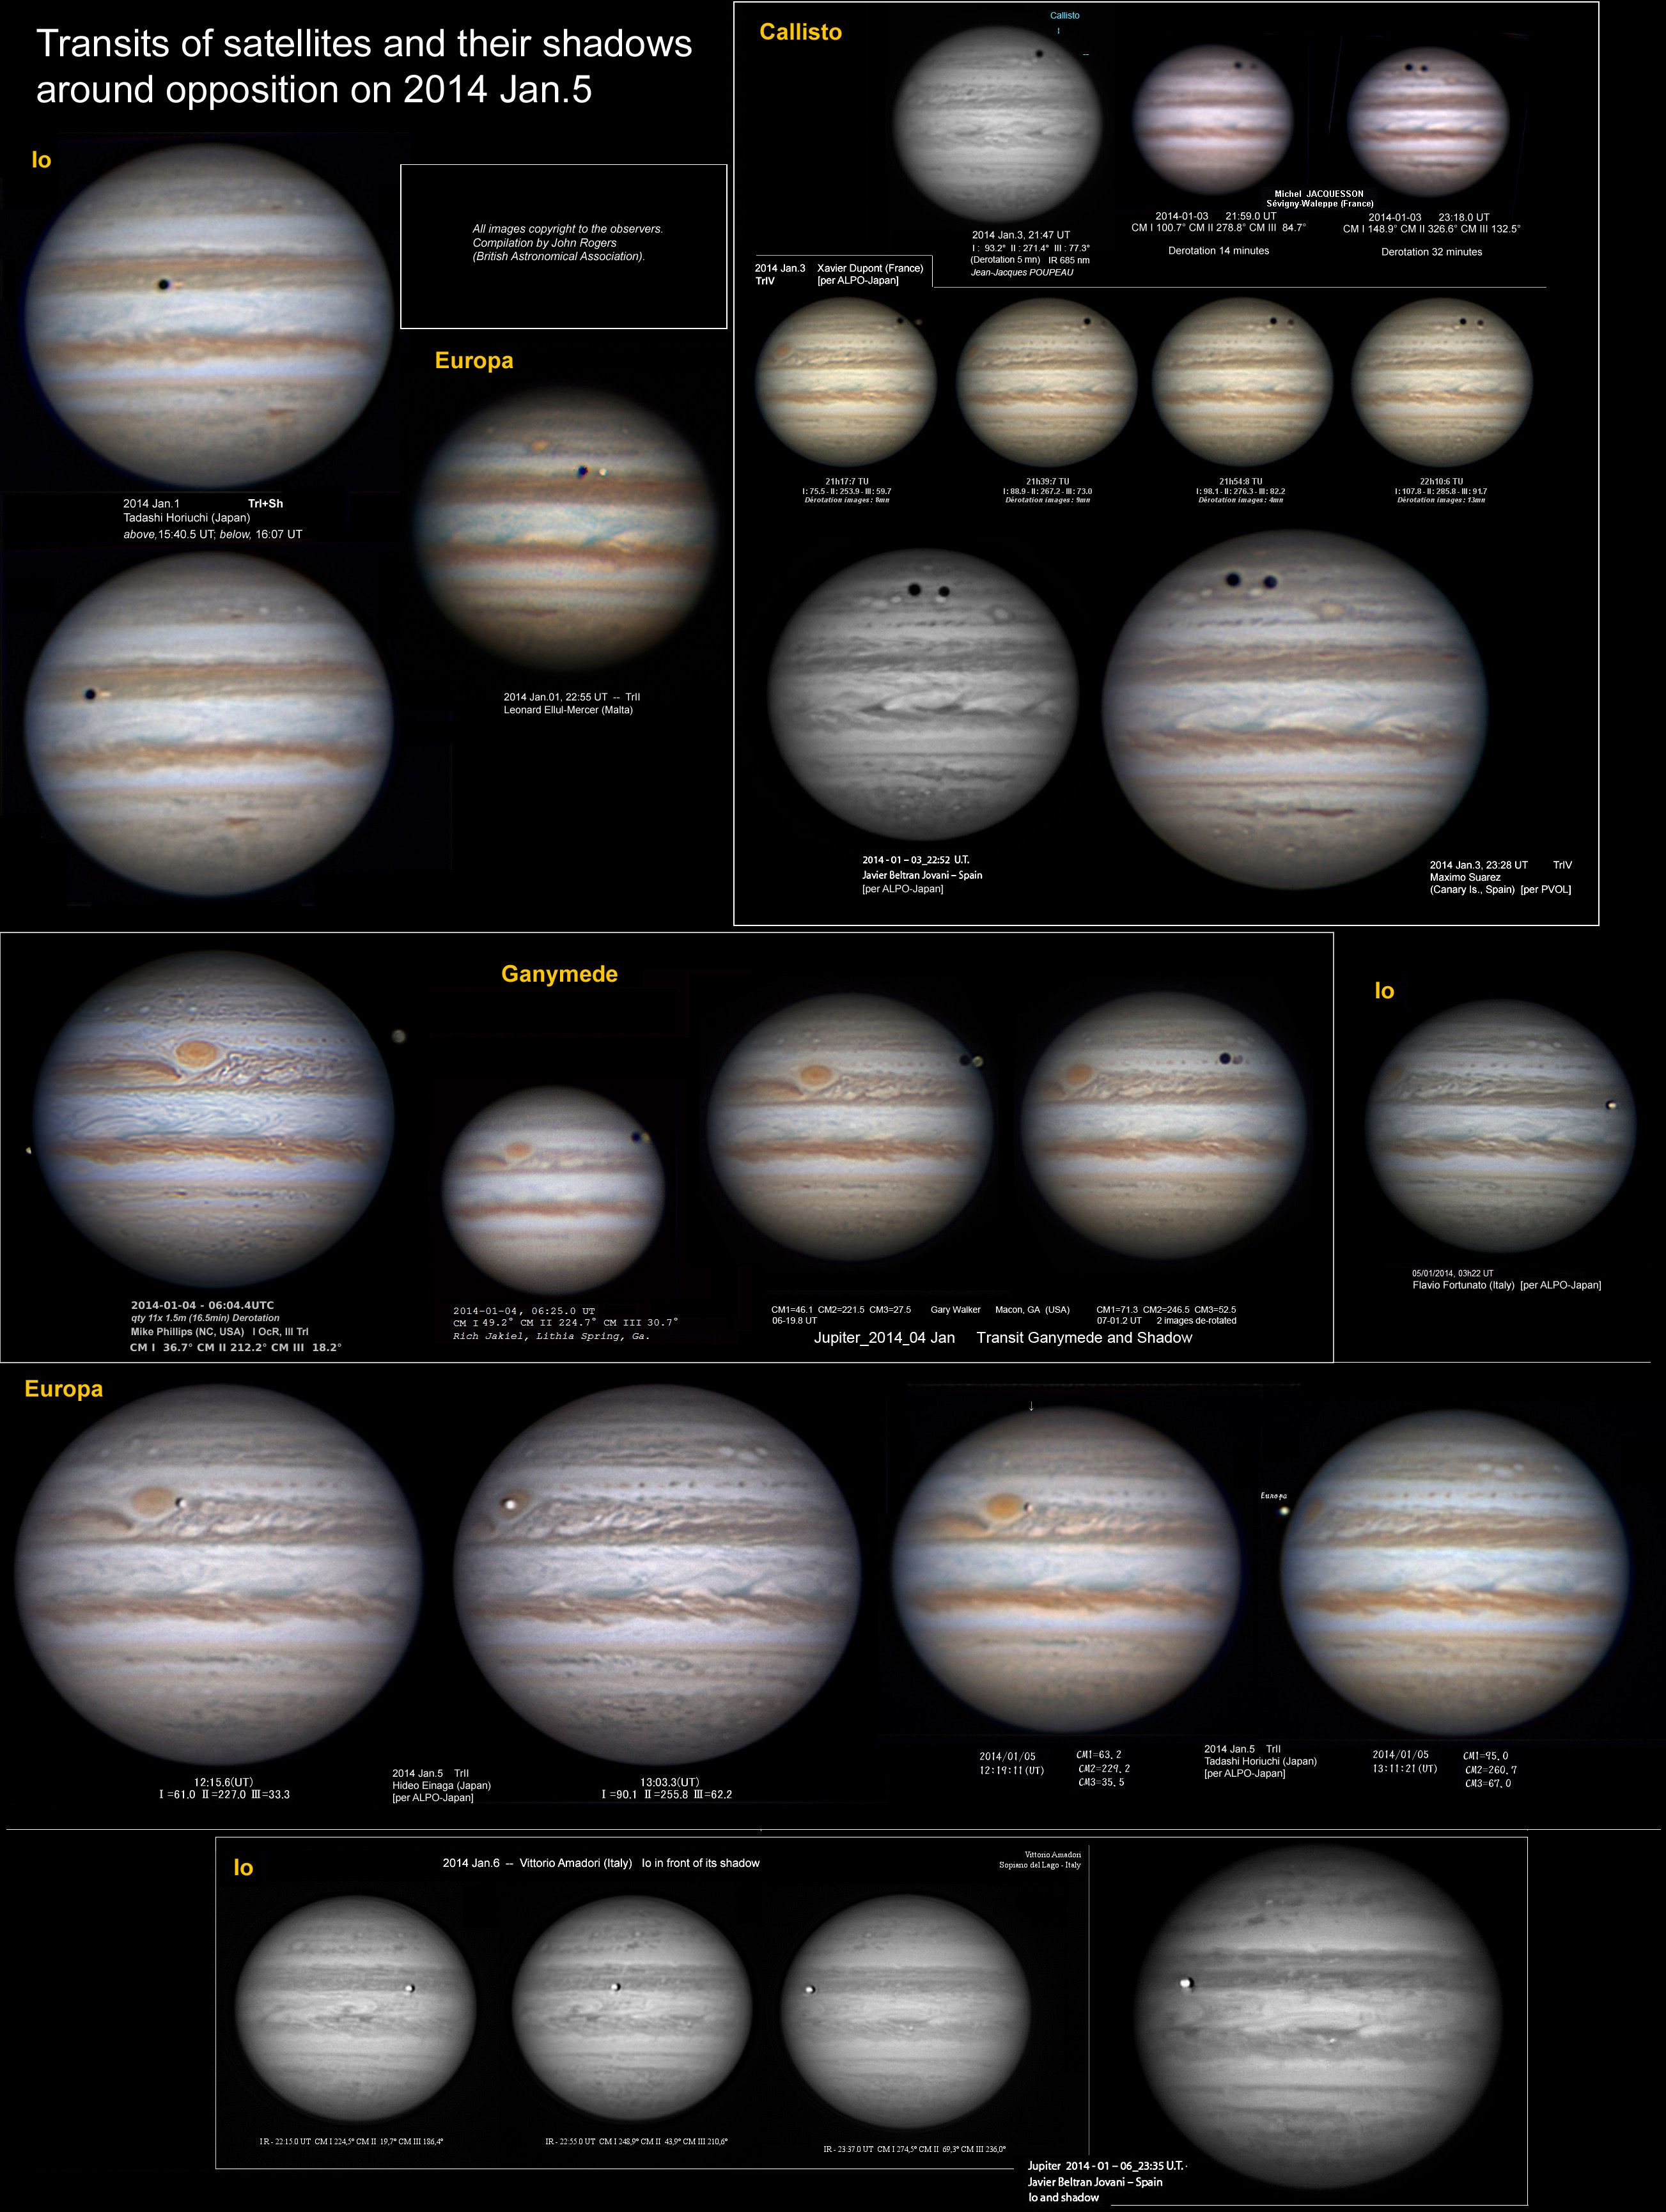 OUR PLANET EARTH: FASCINATING PHENOMENA OF JUPITER'S MOONS